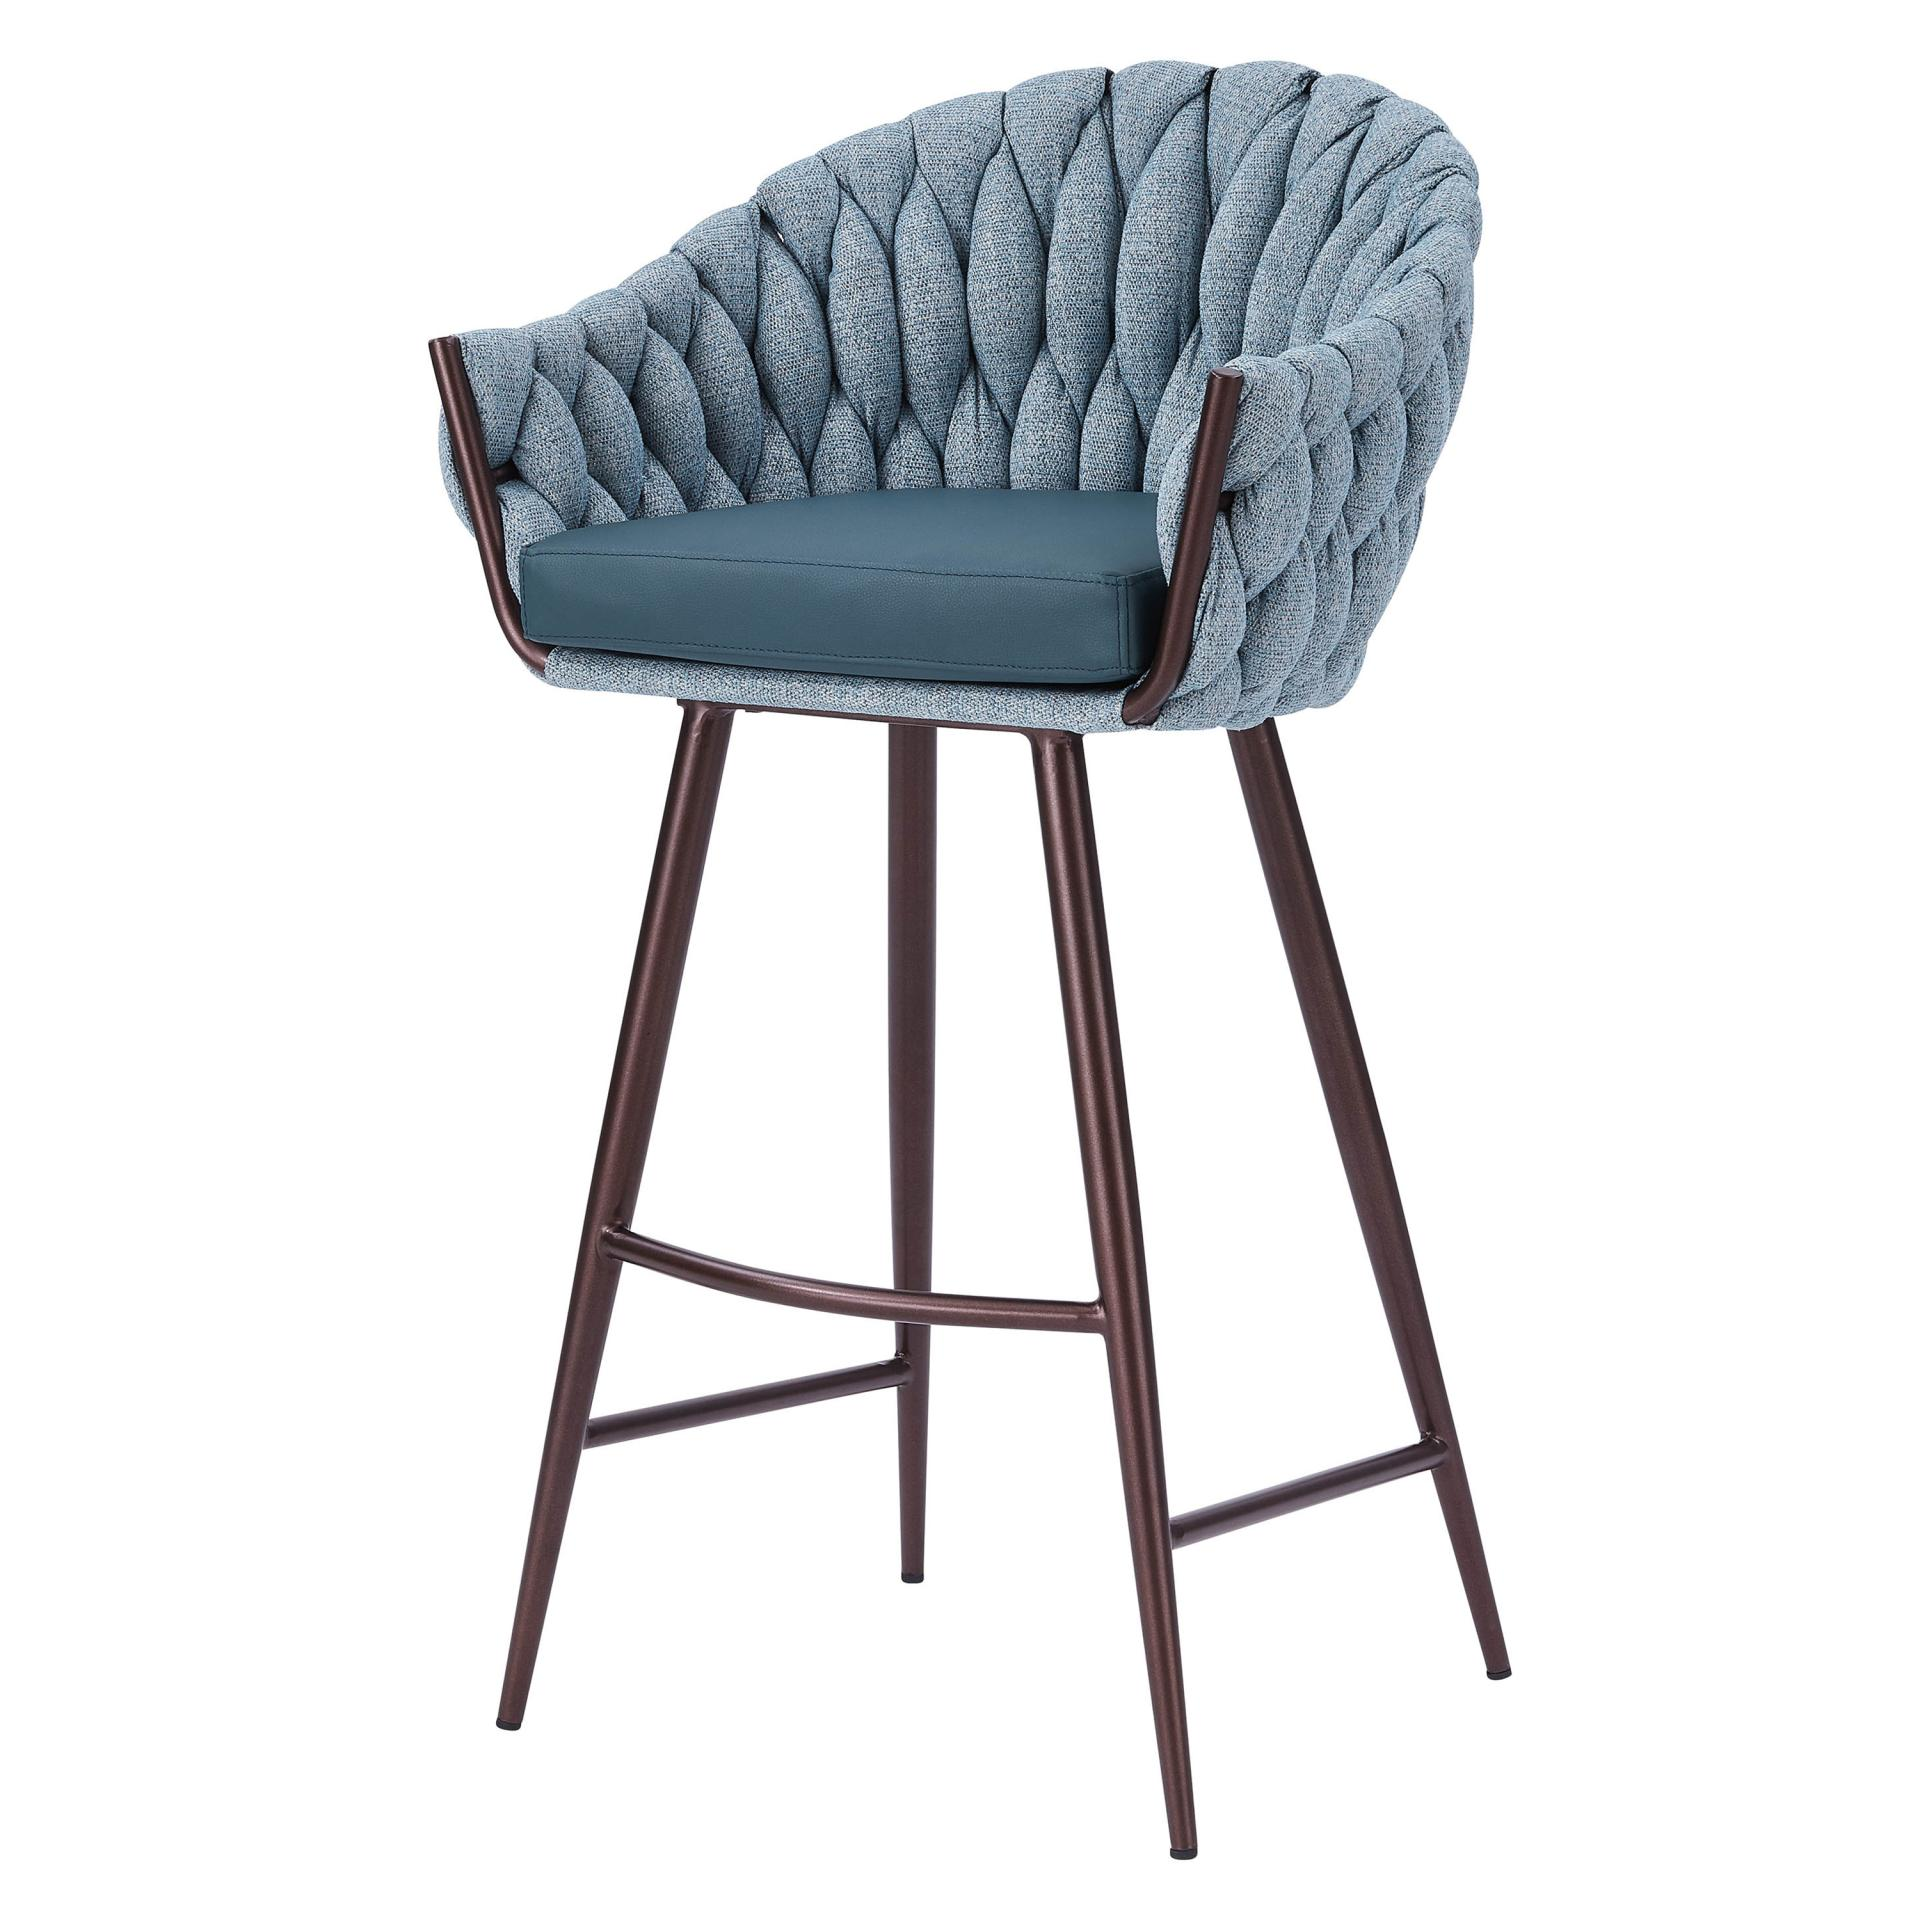 Swell 1240003 3557 Npd Home Furniture Wholesale Lifestyle Alphanode Cool Chair Designs And Ideas Alphanodeonline